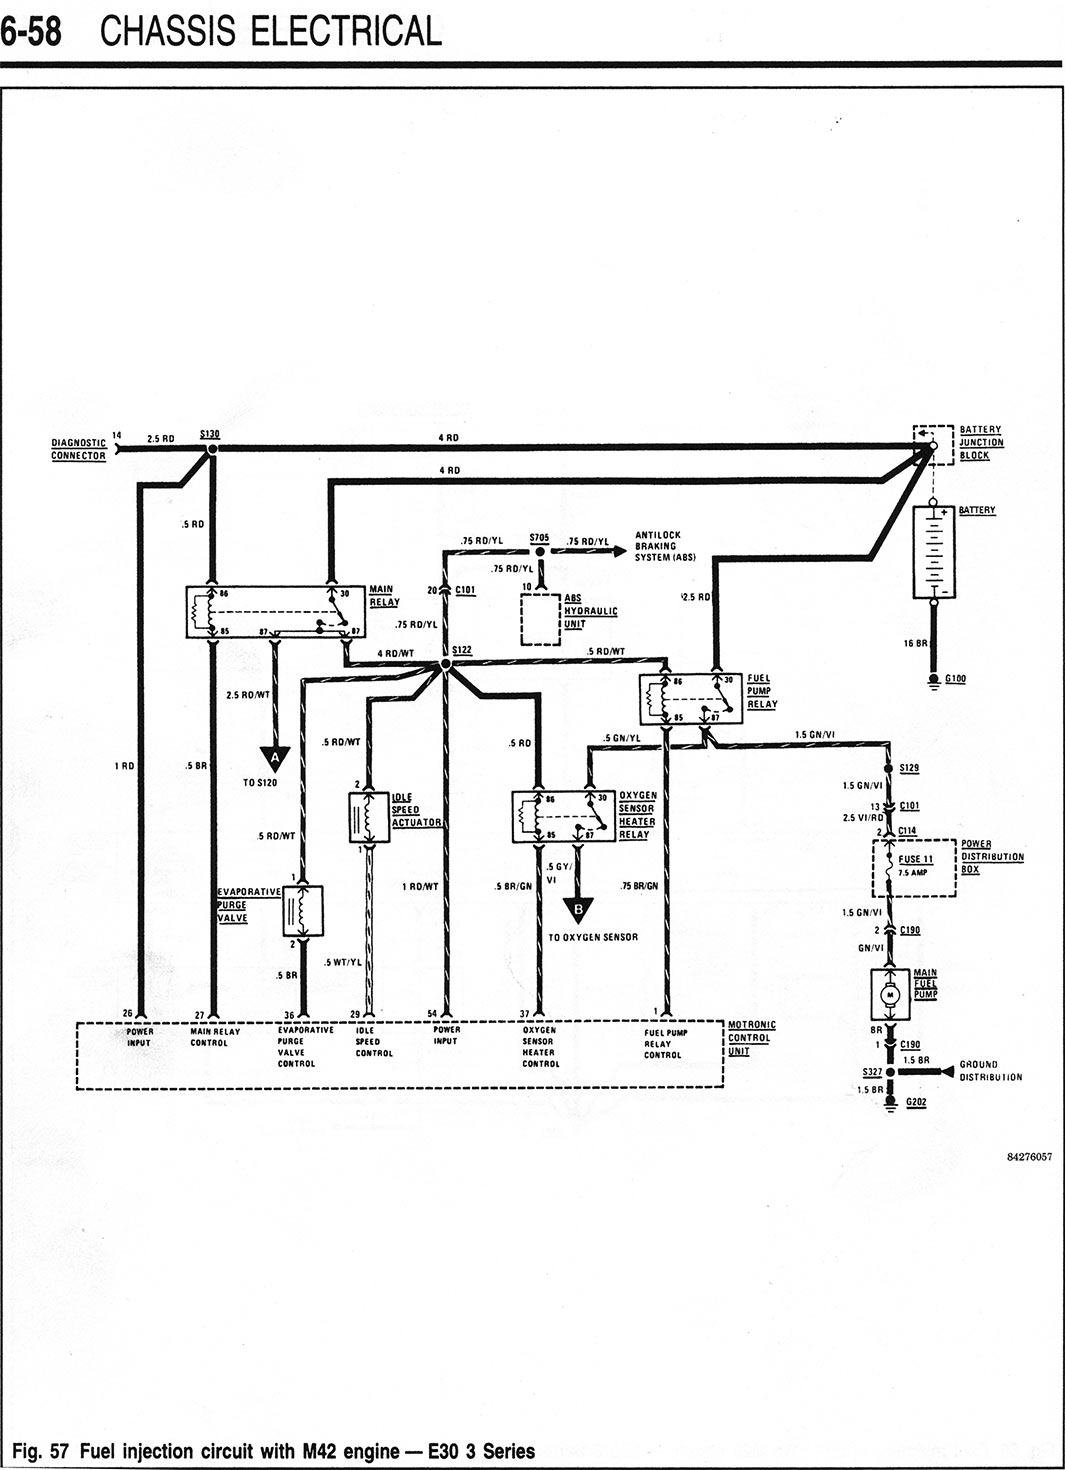 PG658 e30 wiring diagram e30 amplifier wiring diagram \u2022 wiring diagrams BMW E46 M3 Black at readyjetset.co